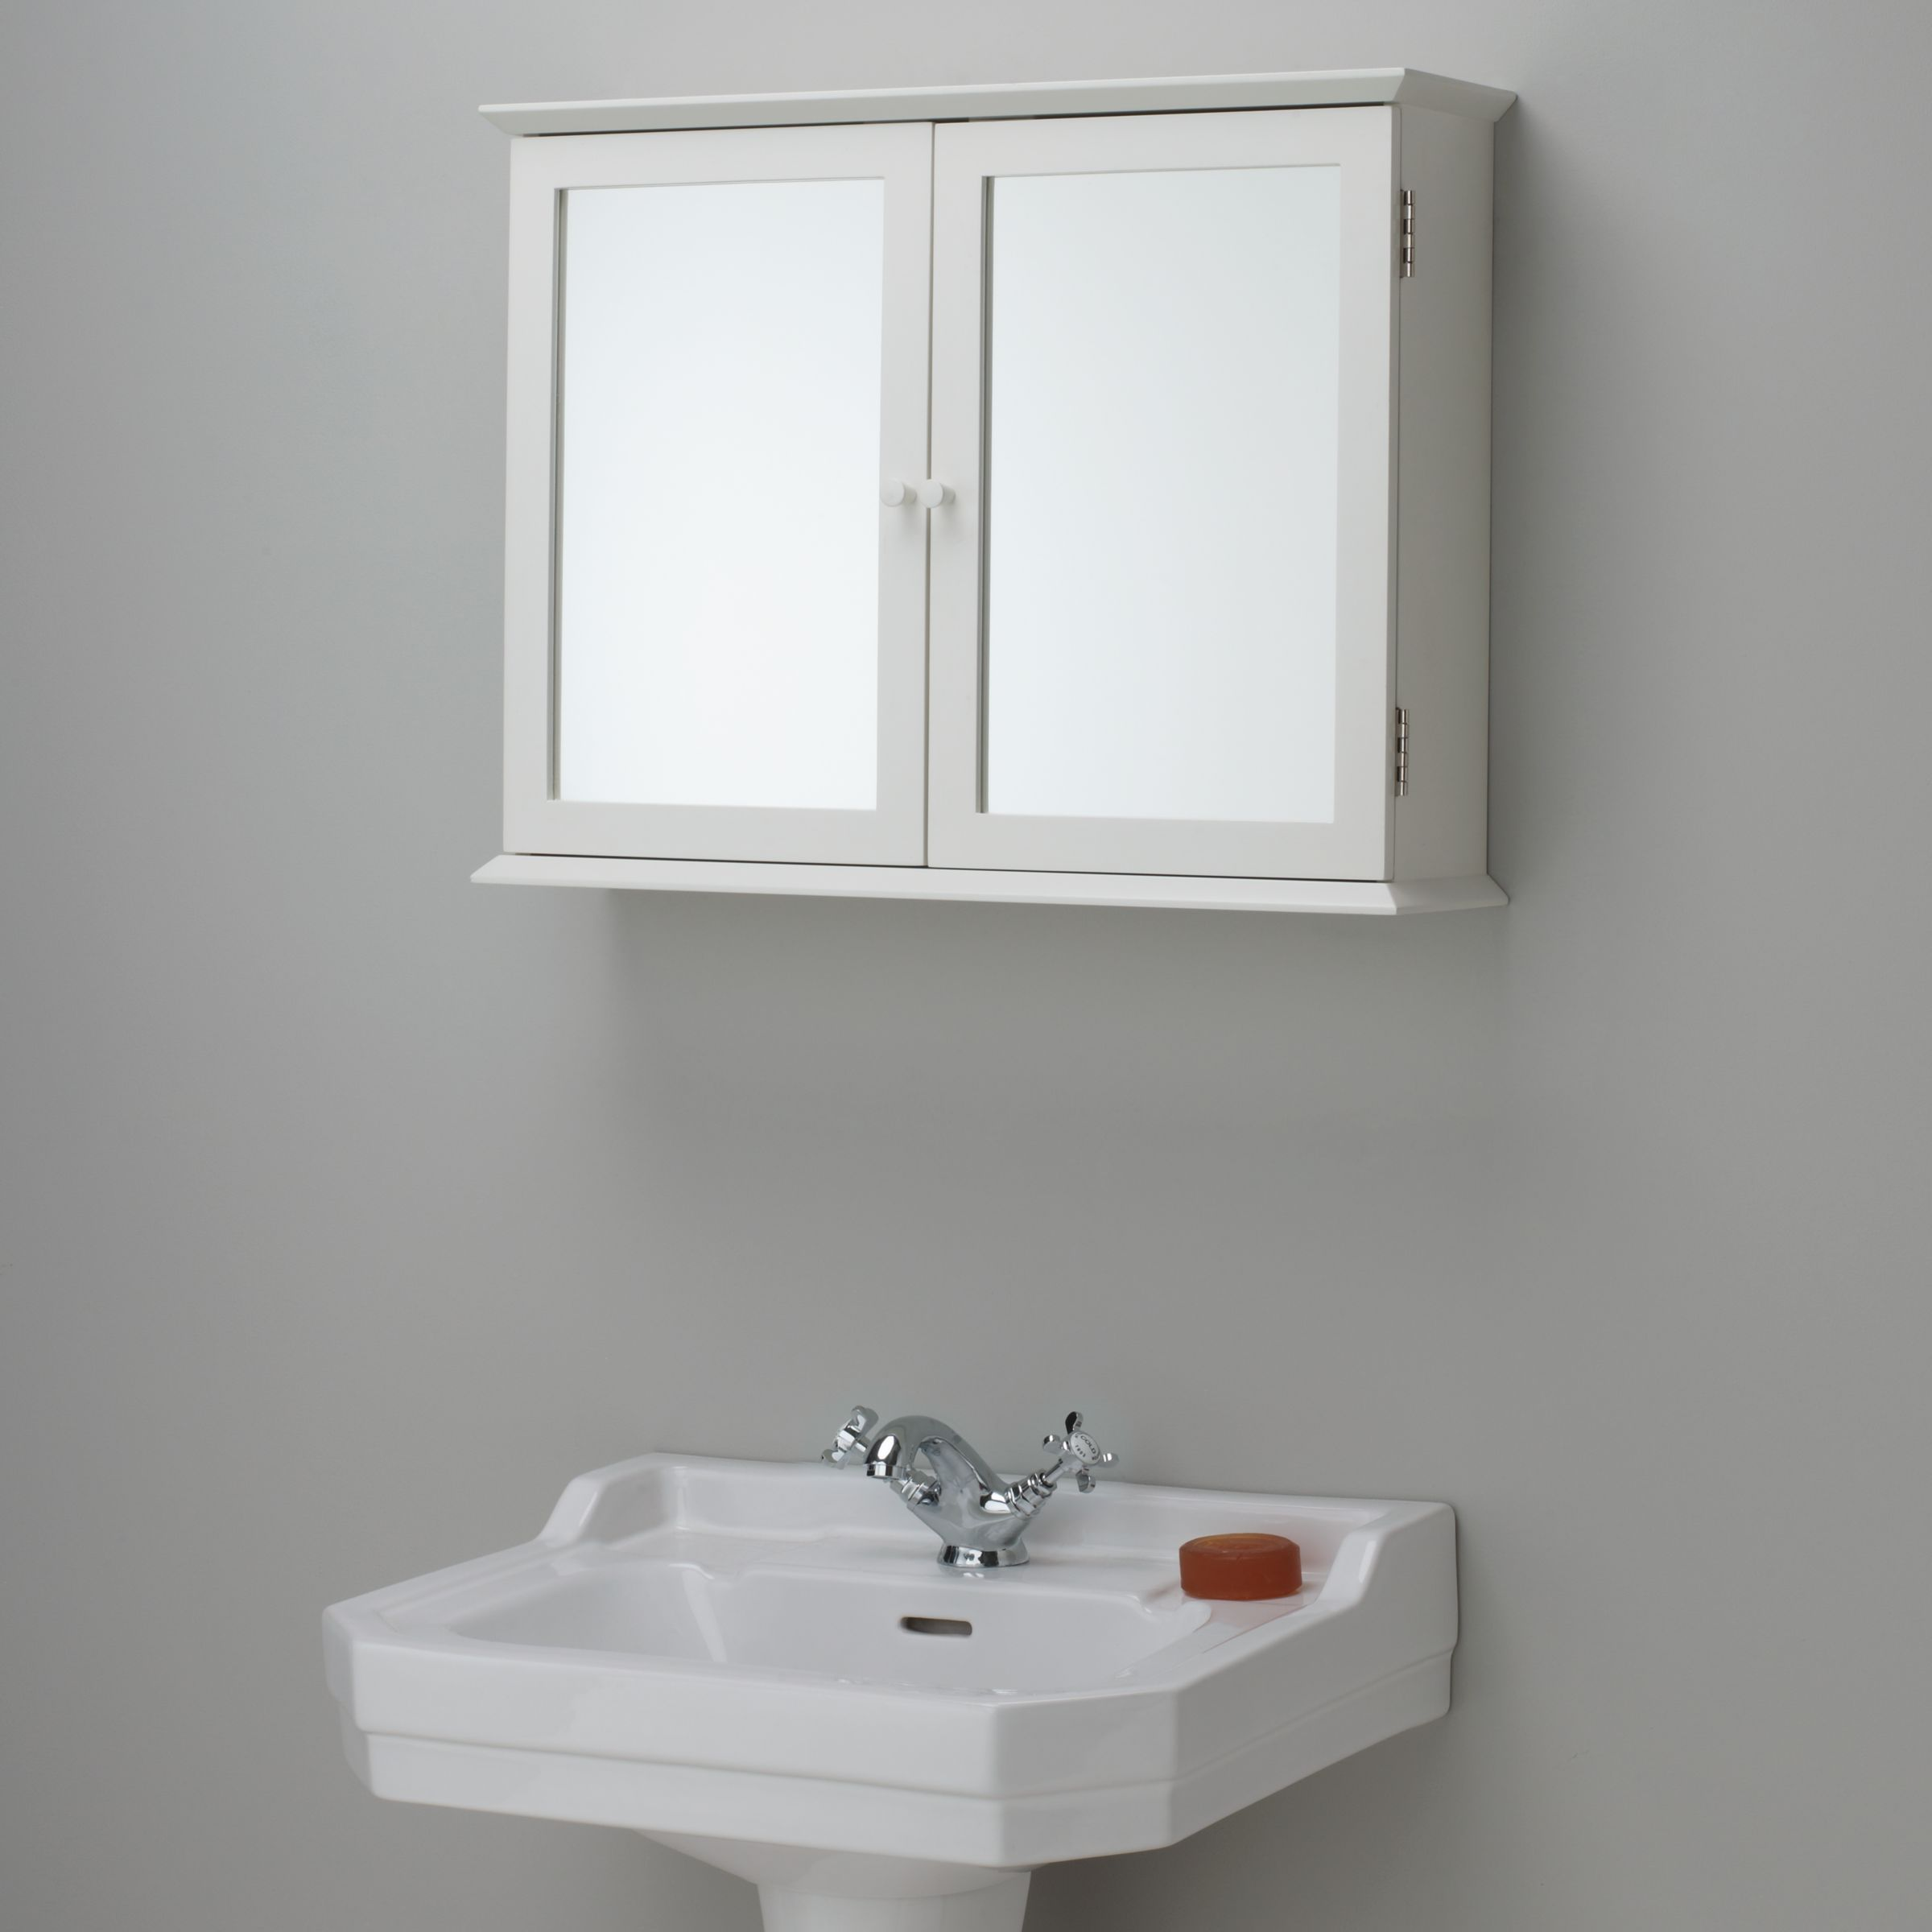 Mirrored Bathroom Cabinets Uk Bathroom Cabinets Bathroom Vanities John Lewis